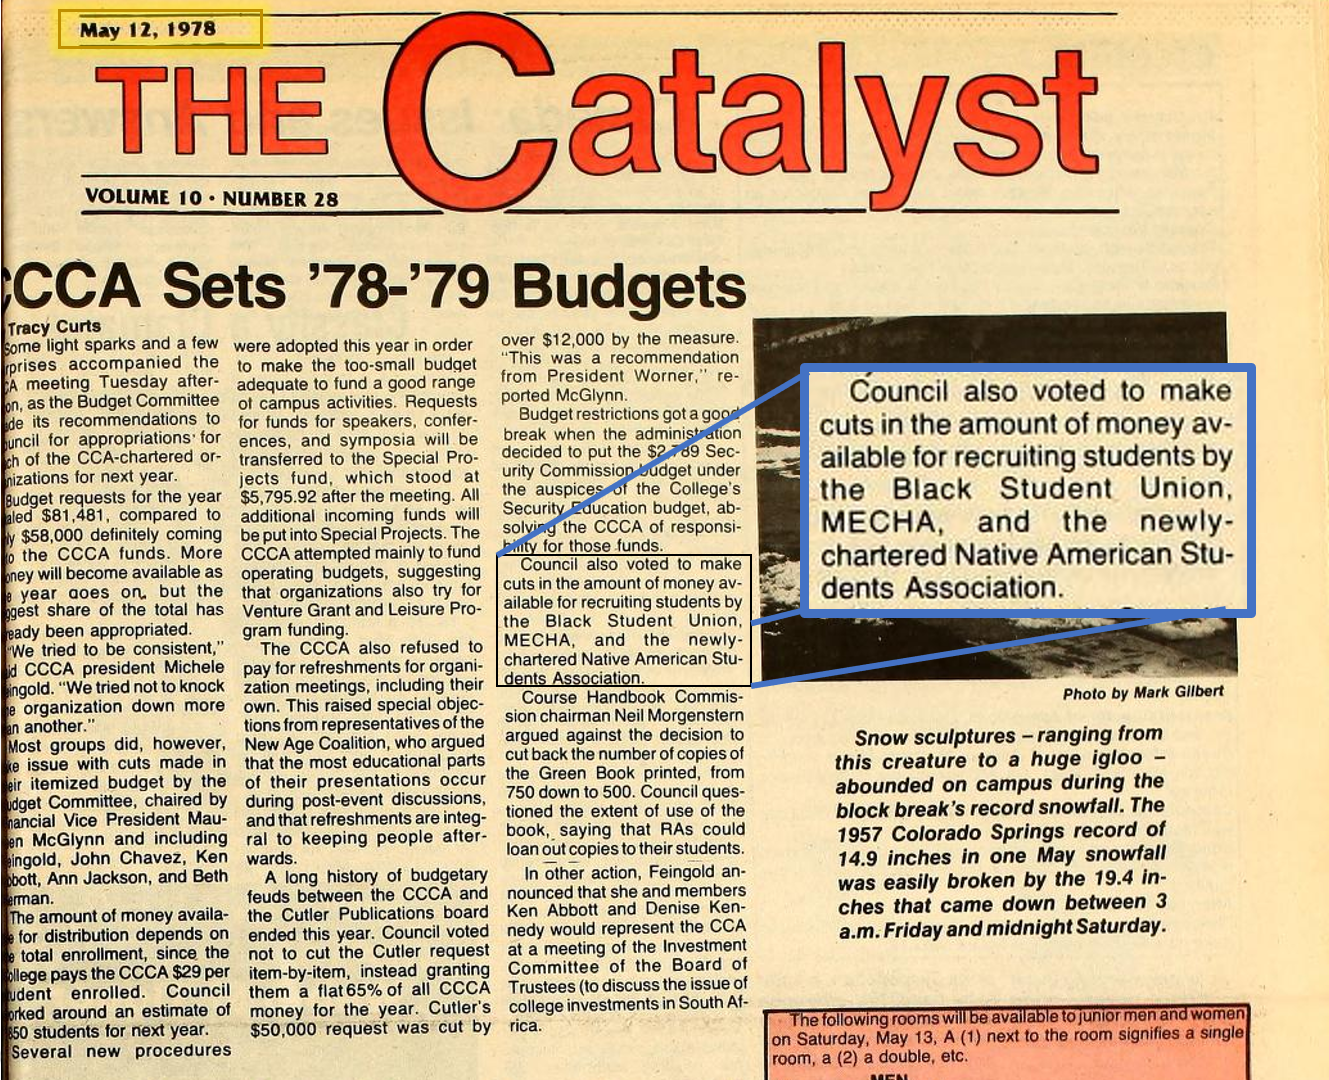 Catalyst_1978_May12_edited.PNG